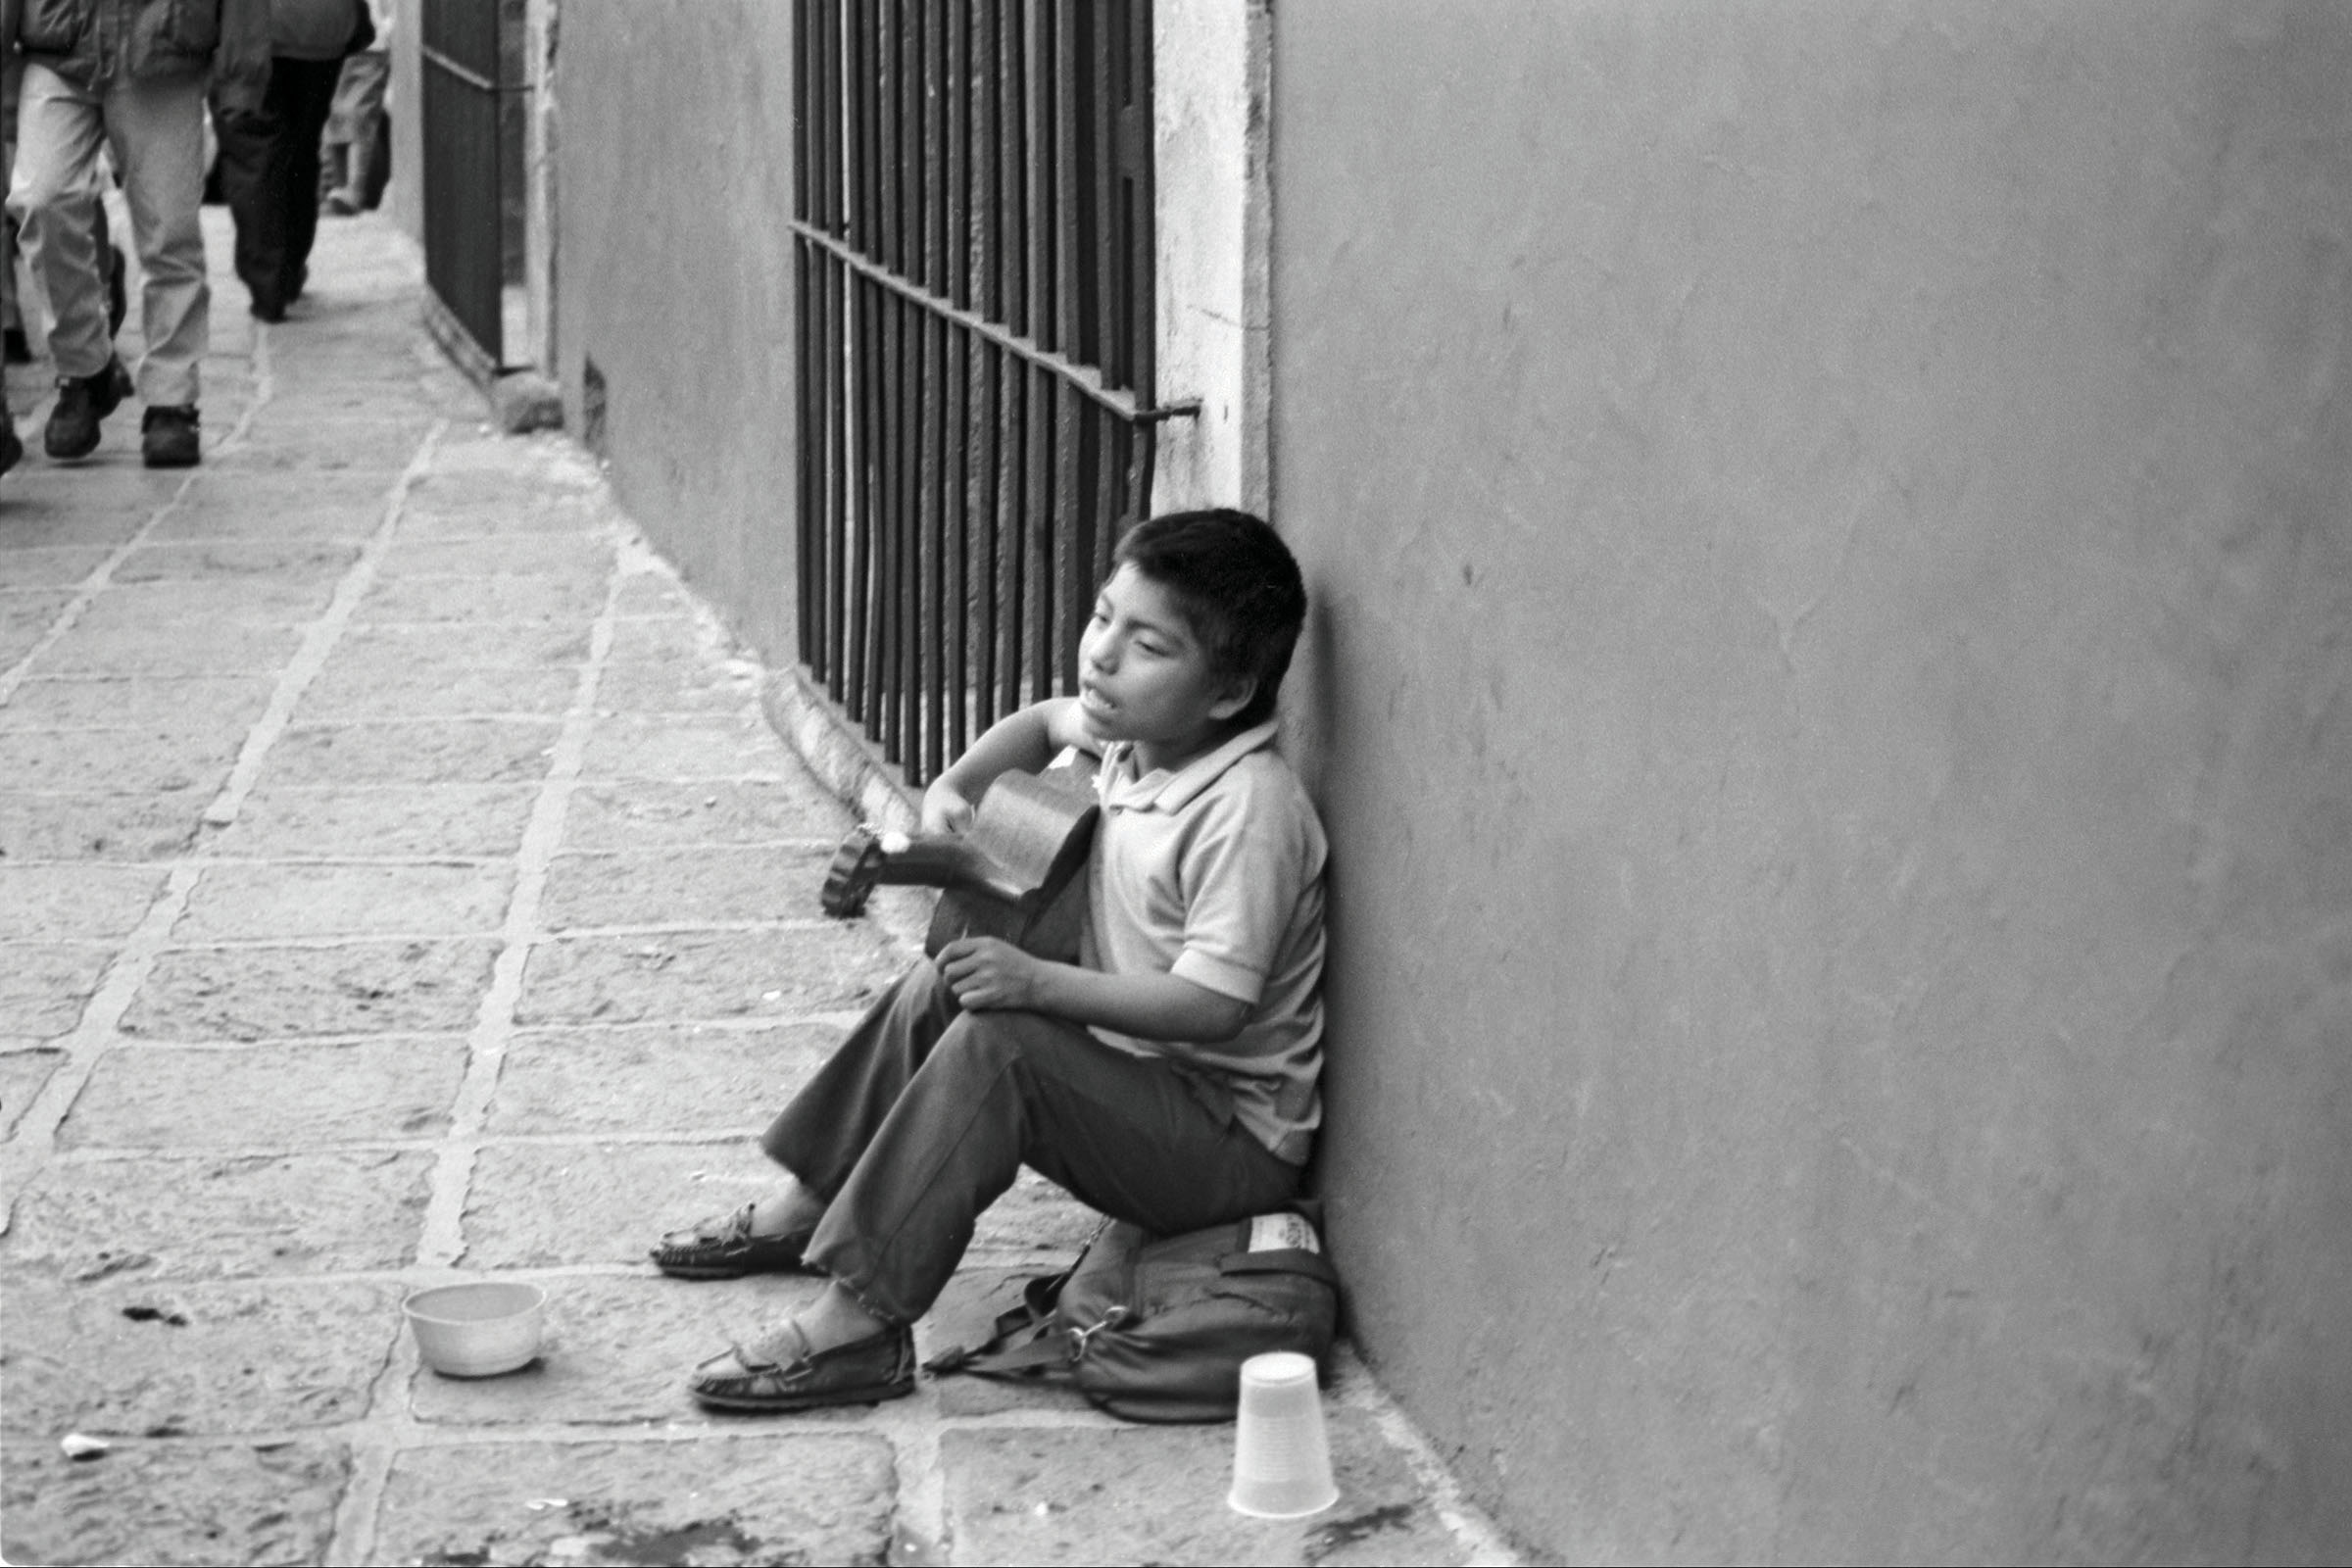 46_MEXICO_BOY_GUITAR_2_C_12x18.jpg